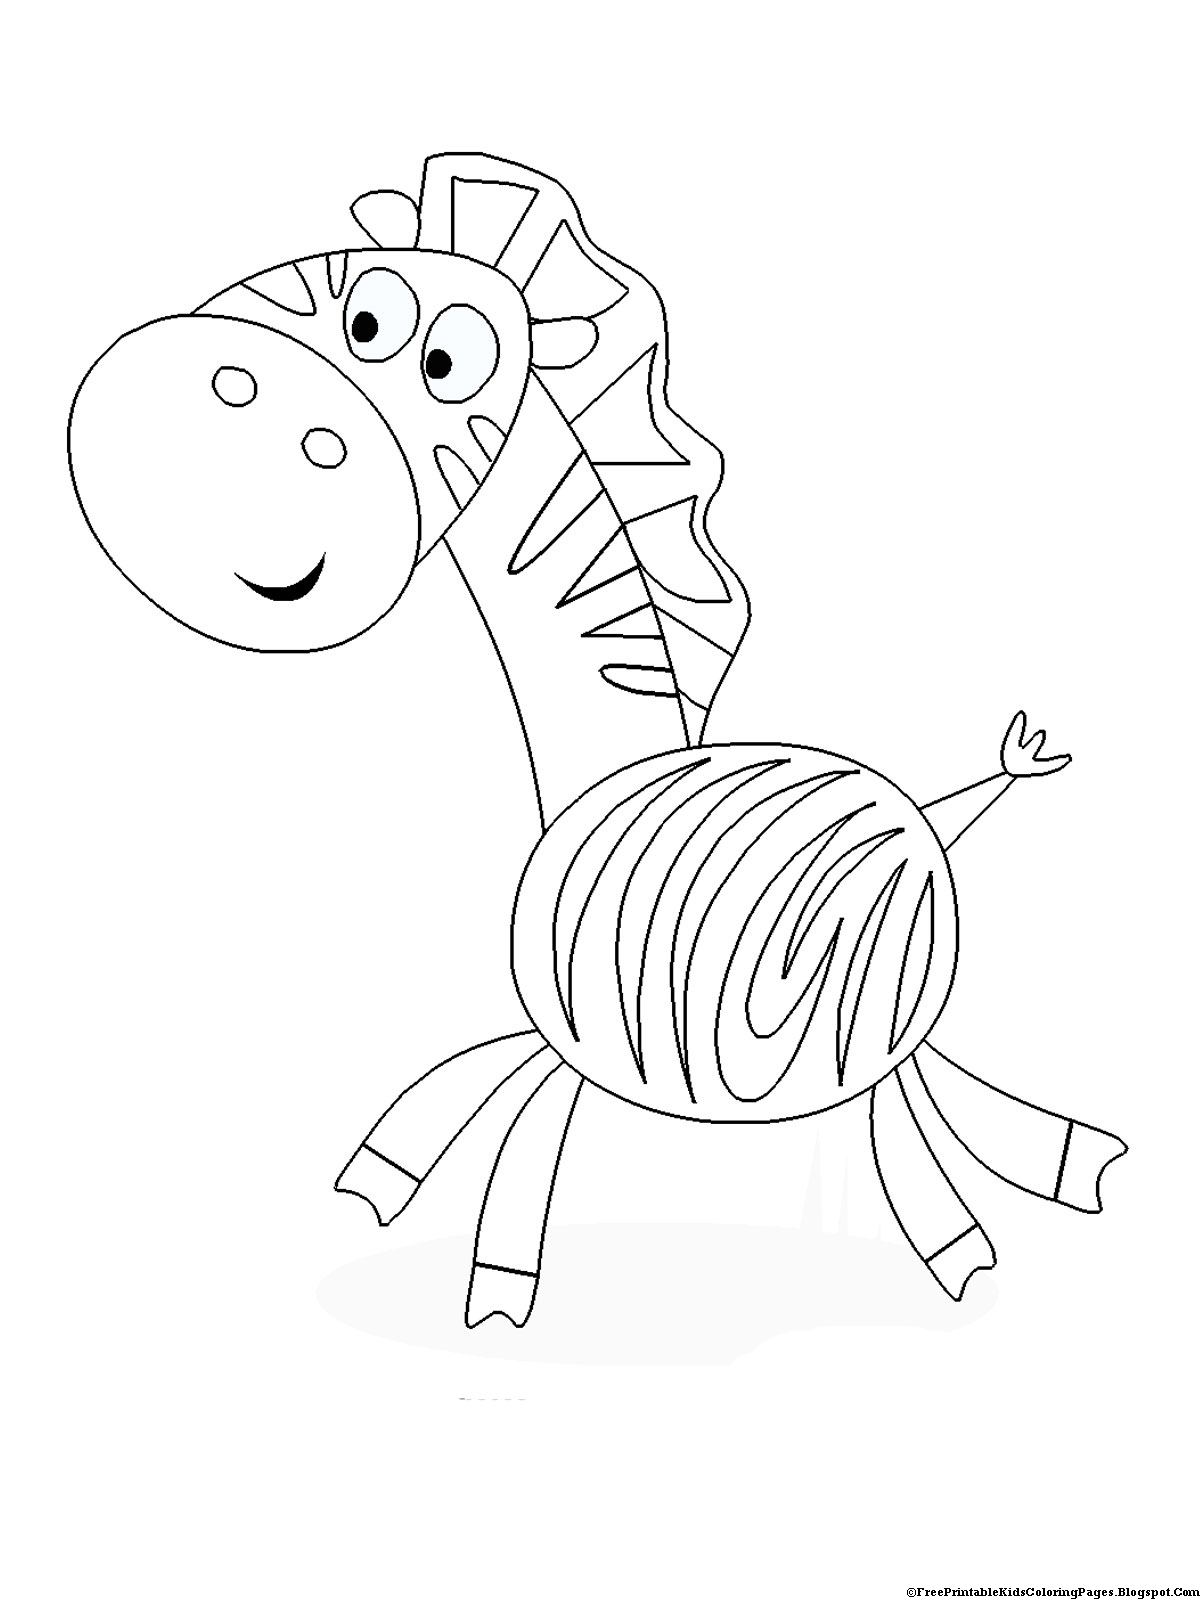 zebra coloring pages free printable free printable zebra coloring pages for kids zebra pages zebra free coloring printable